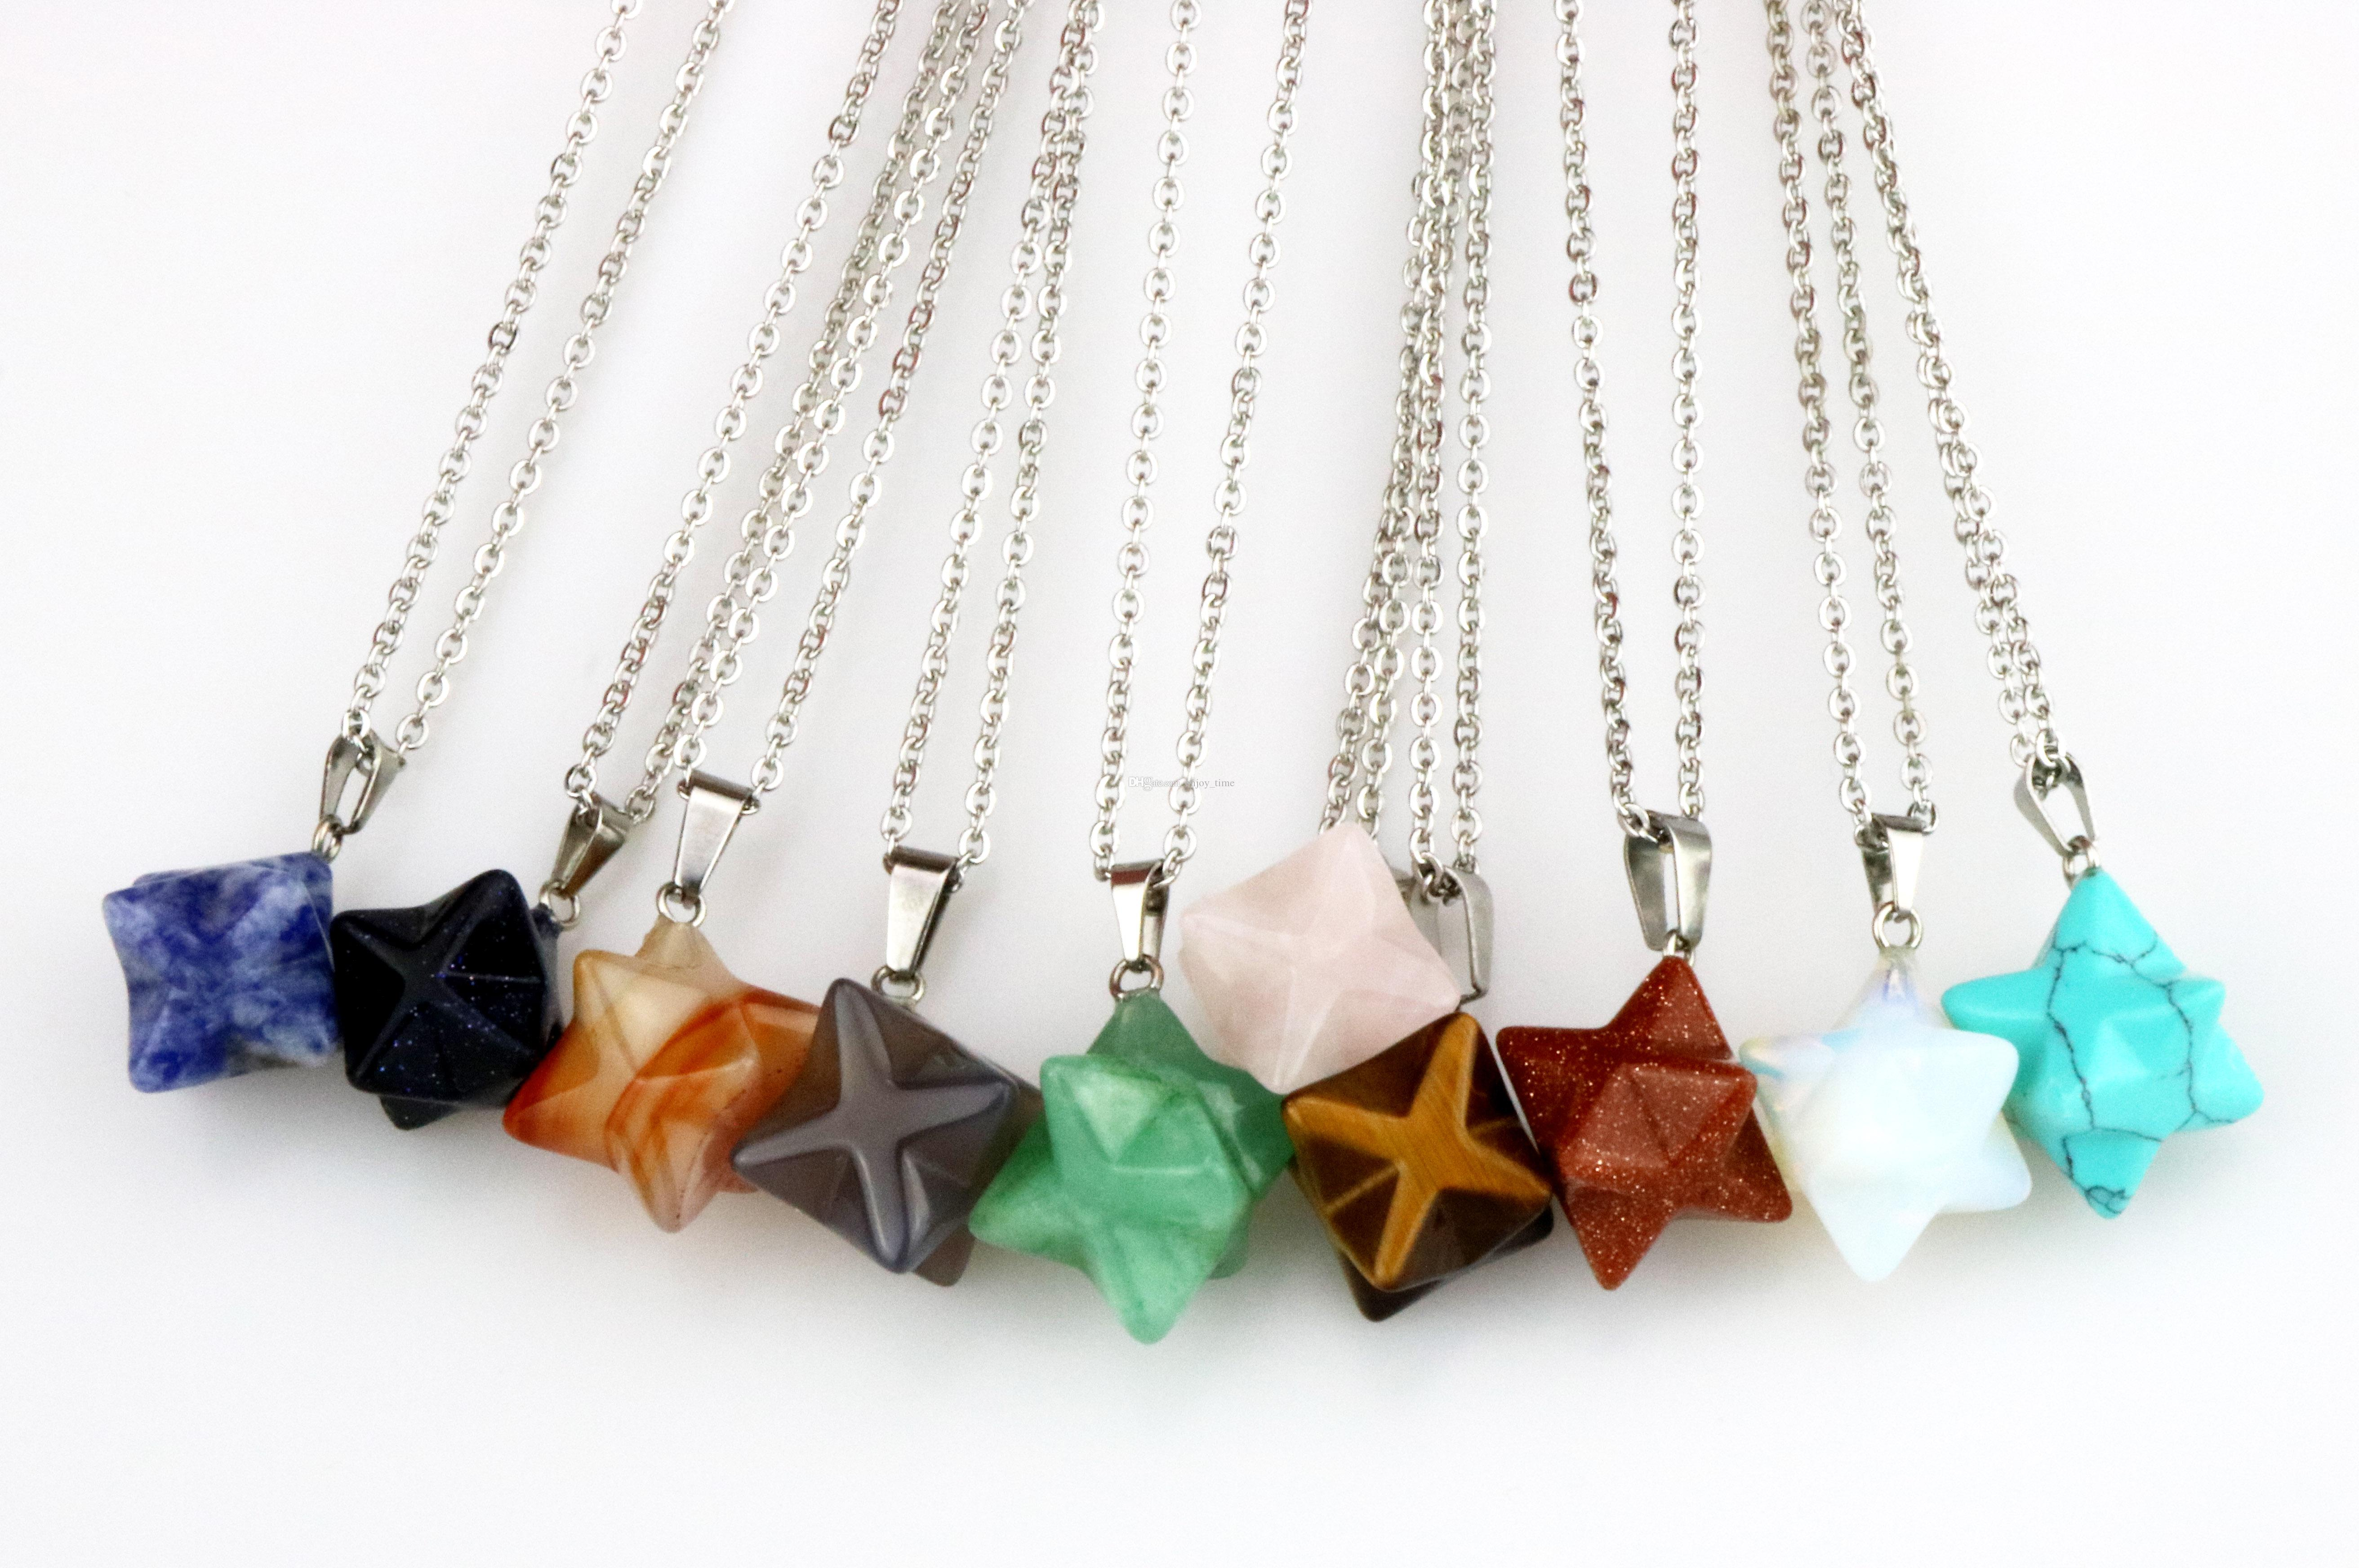 Bohemian Natural Stone Necklace for Girl Turquoise Opal Pink Crystal Lazuli Polyhedral Reiki Pendant Necklace